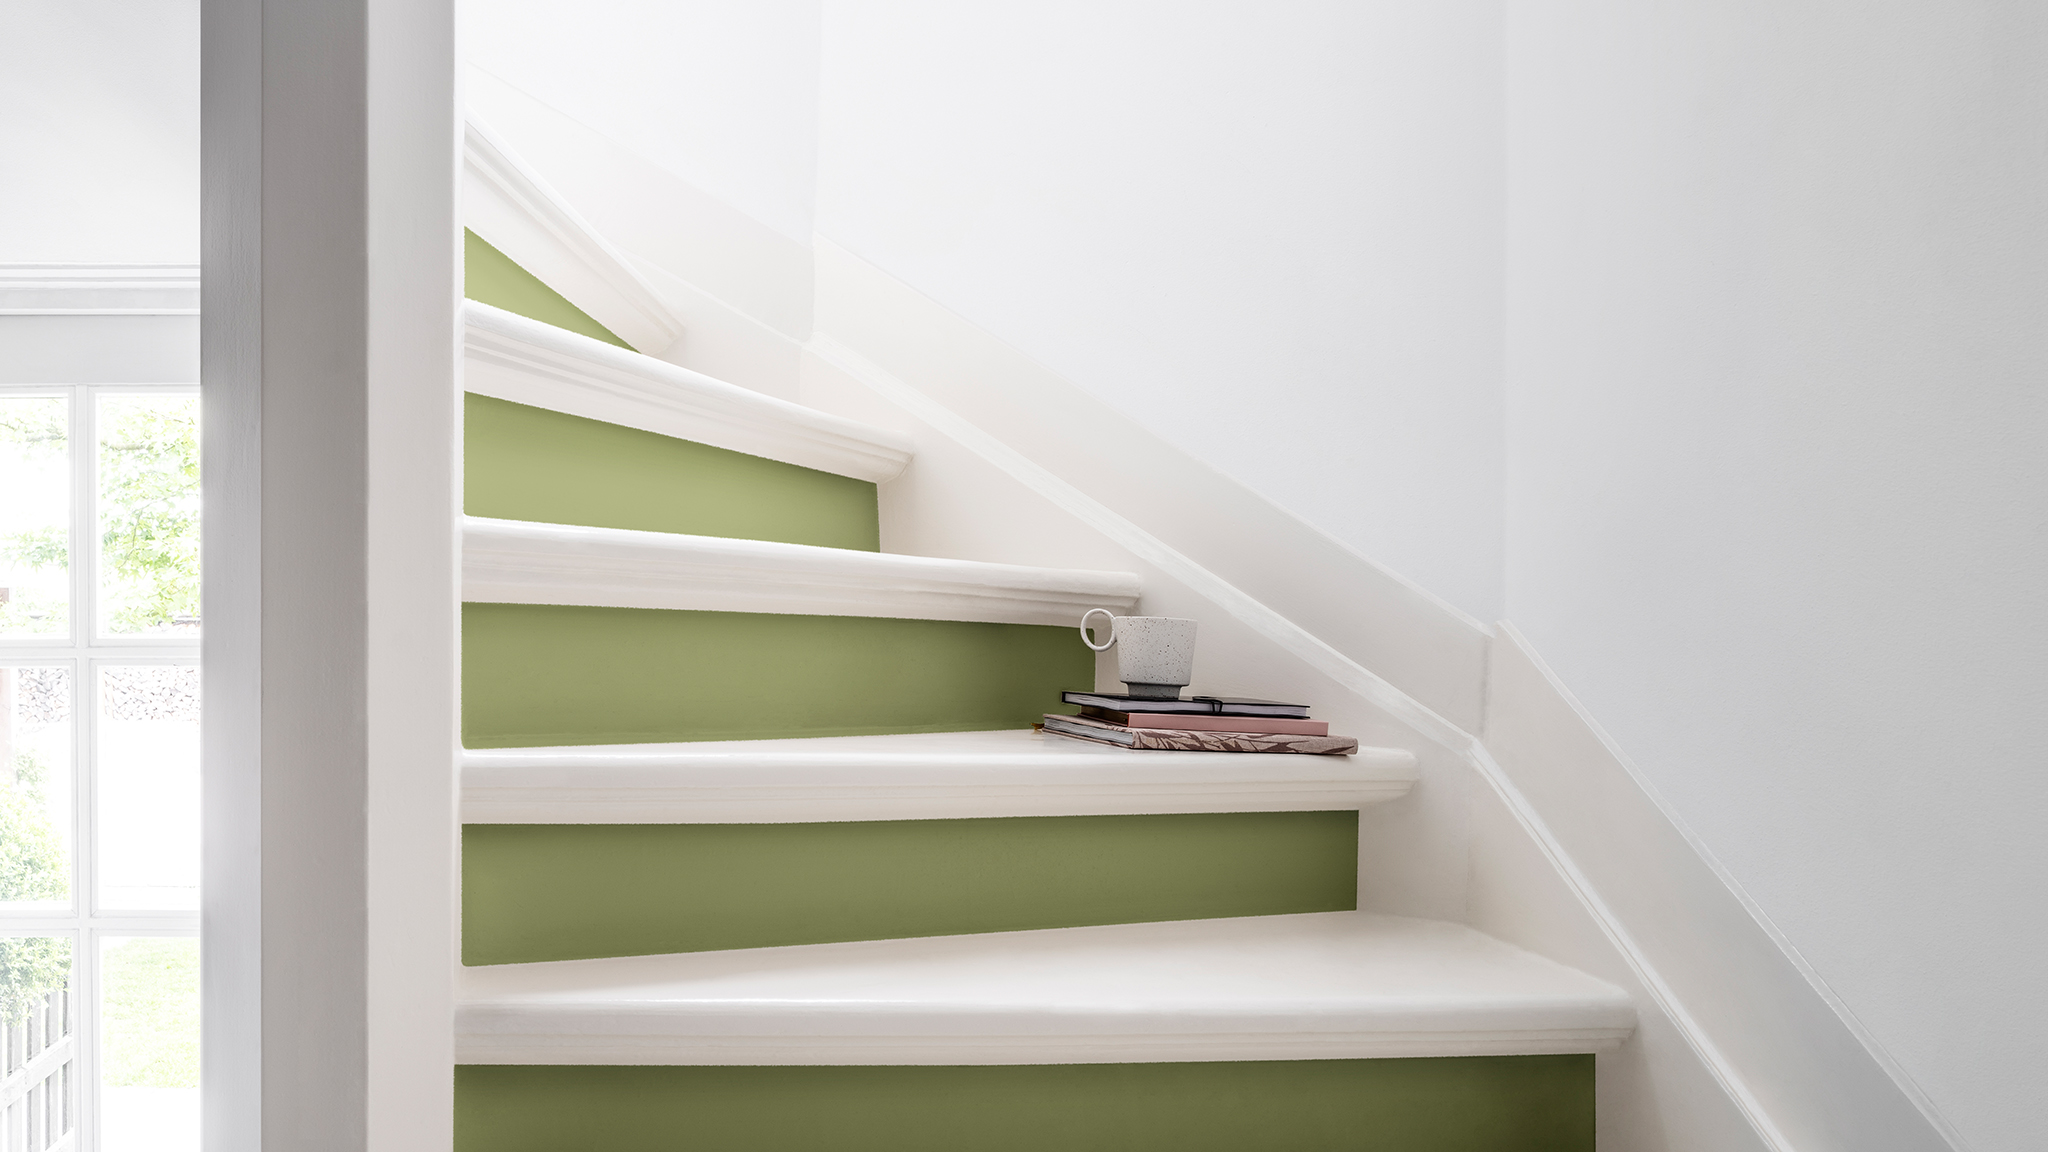 dulux-simply-refresh-floors-stairs-ideas-global-3